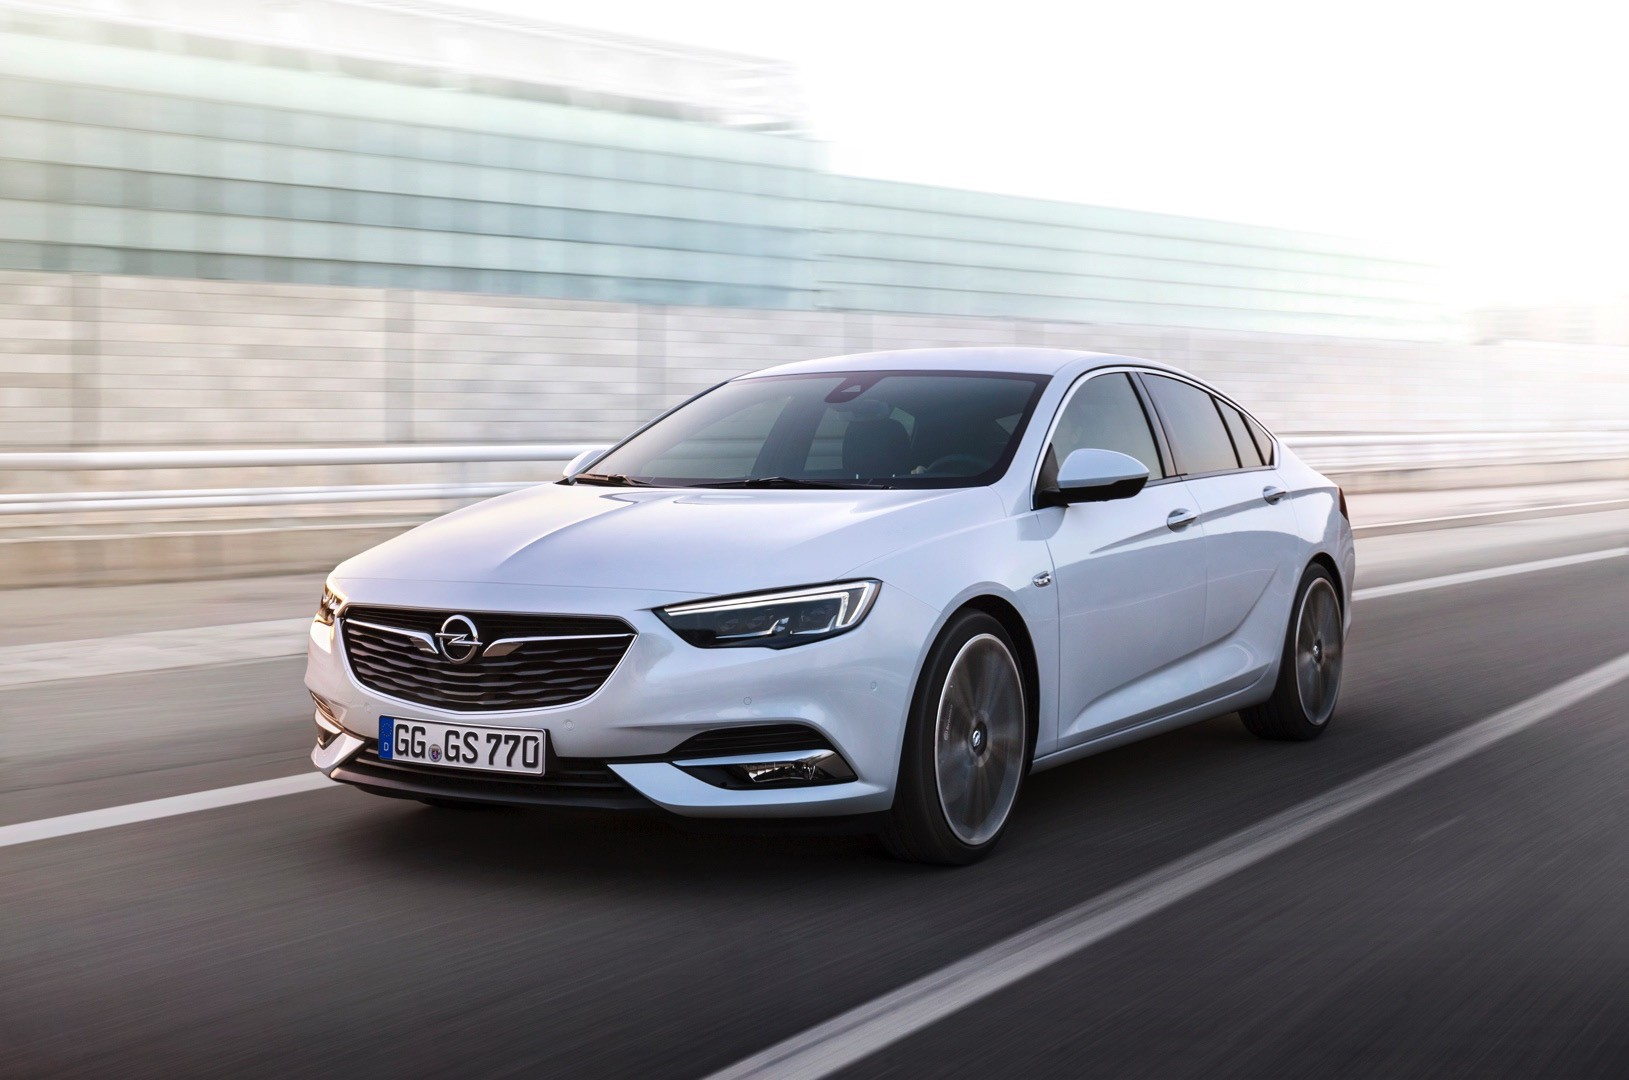 2018 buick regal rendered wagon body style could also make the cut autoevolution. Black Bedroom Furniture Sets. Home Design Ideas